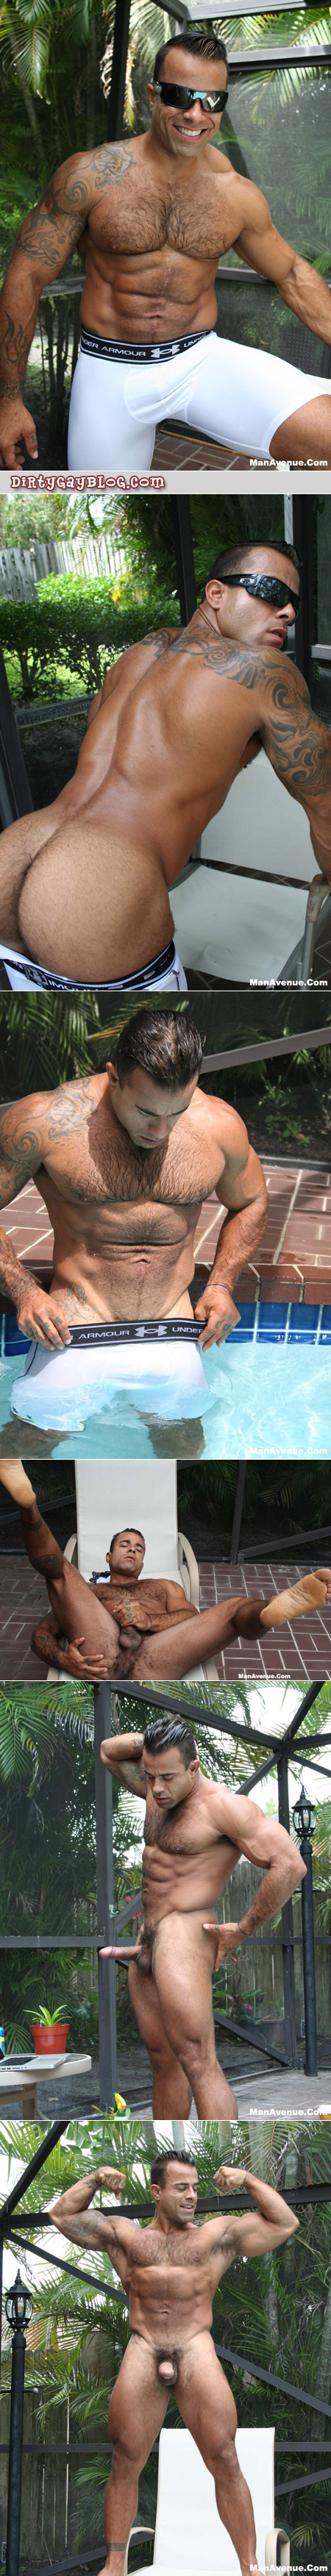 Giant muscle Latino with tattoos in compression shorts gets naked, wet and hard by the pool.